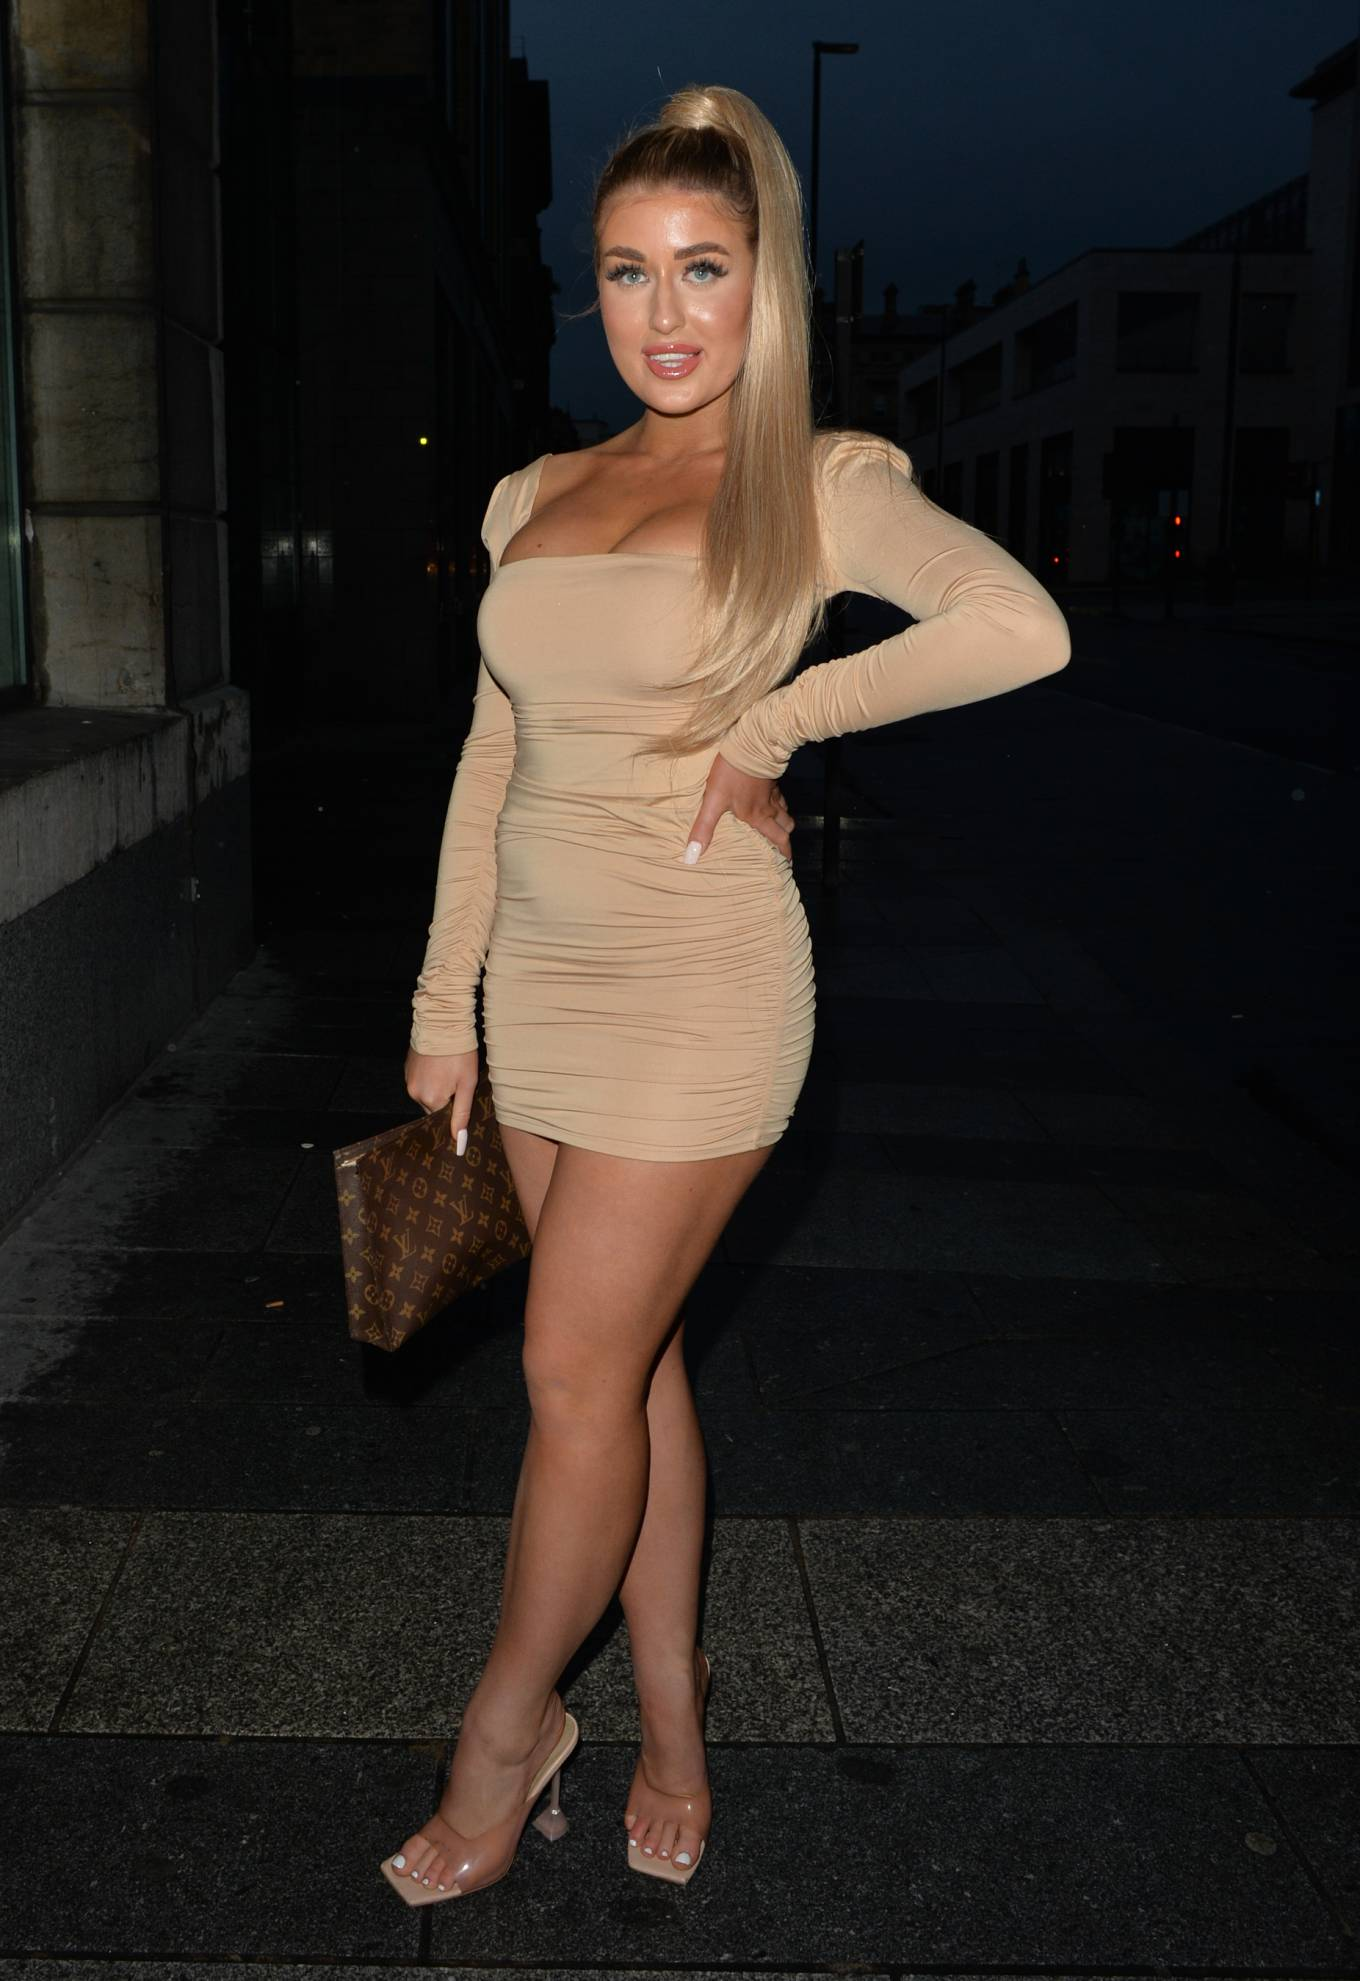 Eve Gale 2020 : Jess and Eve Gale – Night out for dinner in Liverpool -12